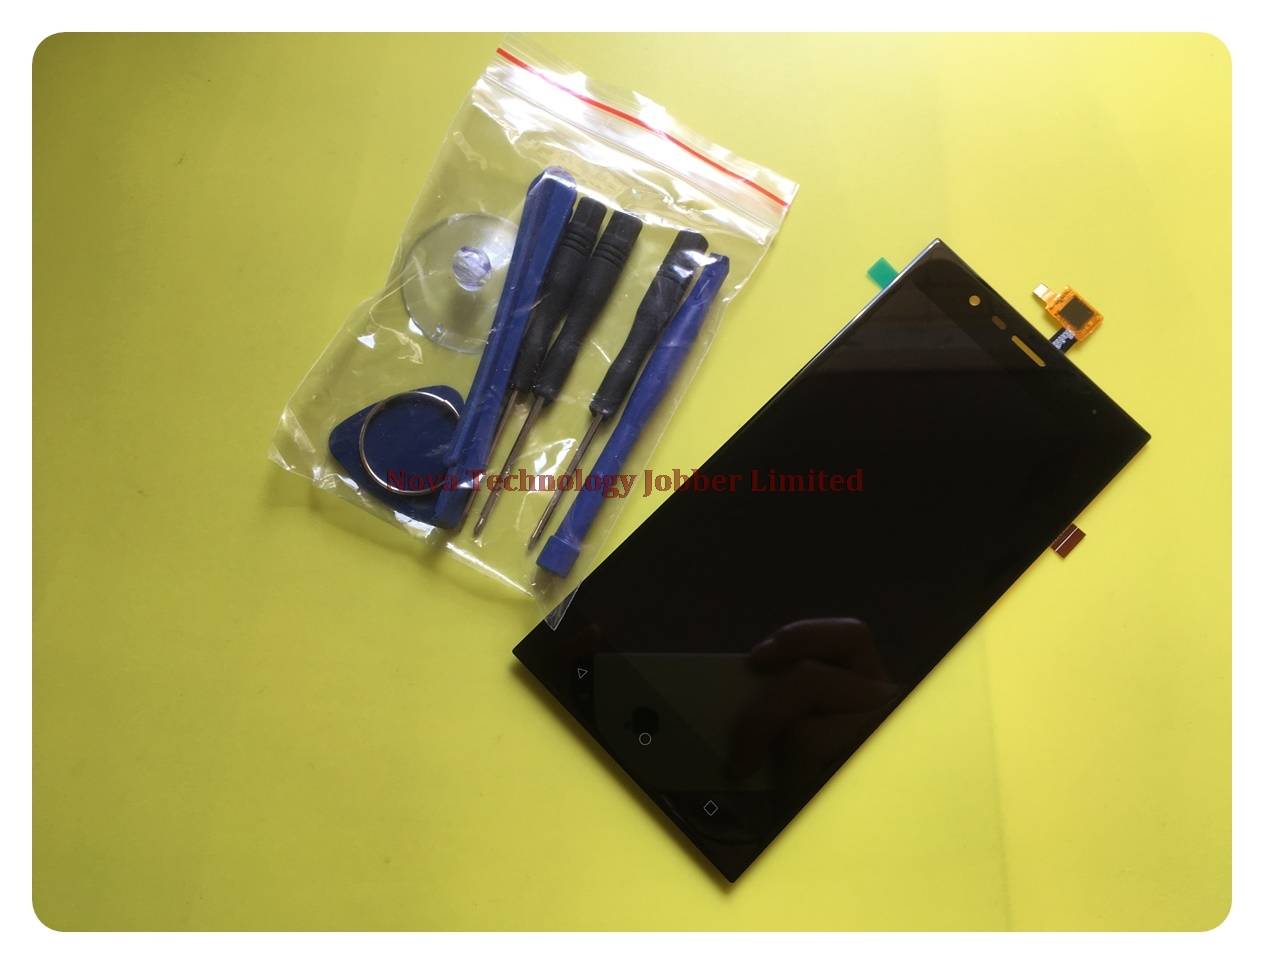 Wyieno 5 Black Boost3 Sesnor For Highscreen Boost 3 / Boost 3 pro LCD Display +Touch Screen Digitizer Screen Assembly